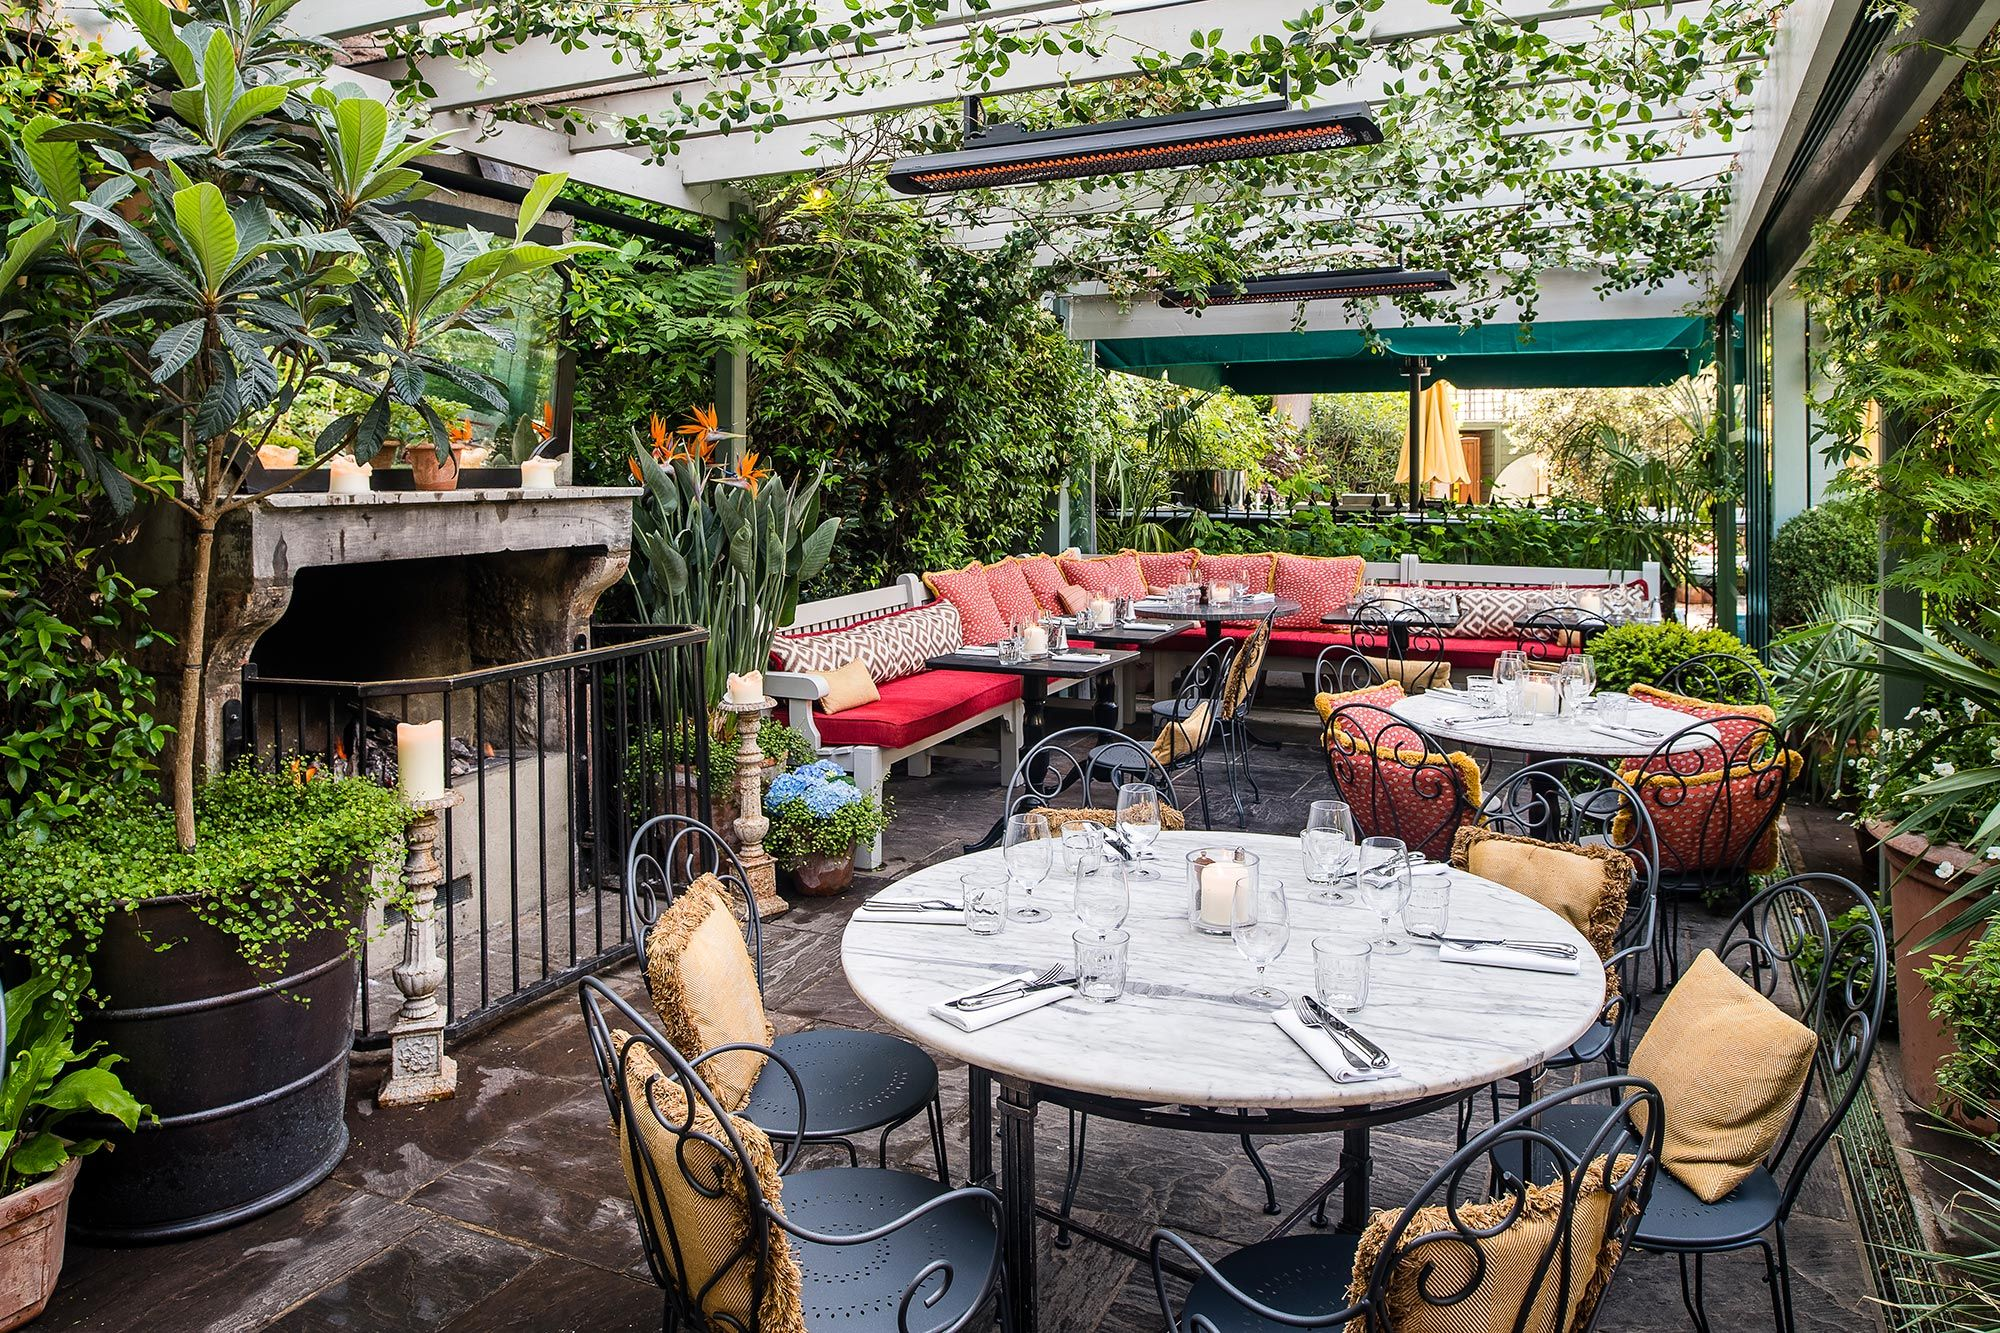 Outdoor Seatings at The Ivy Chelsea Garden The Ivy